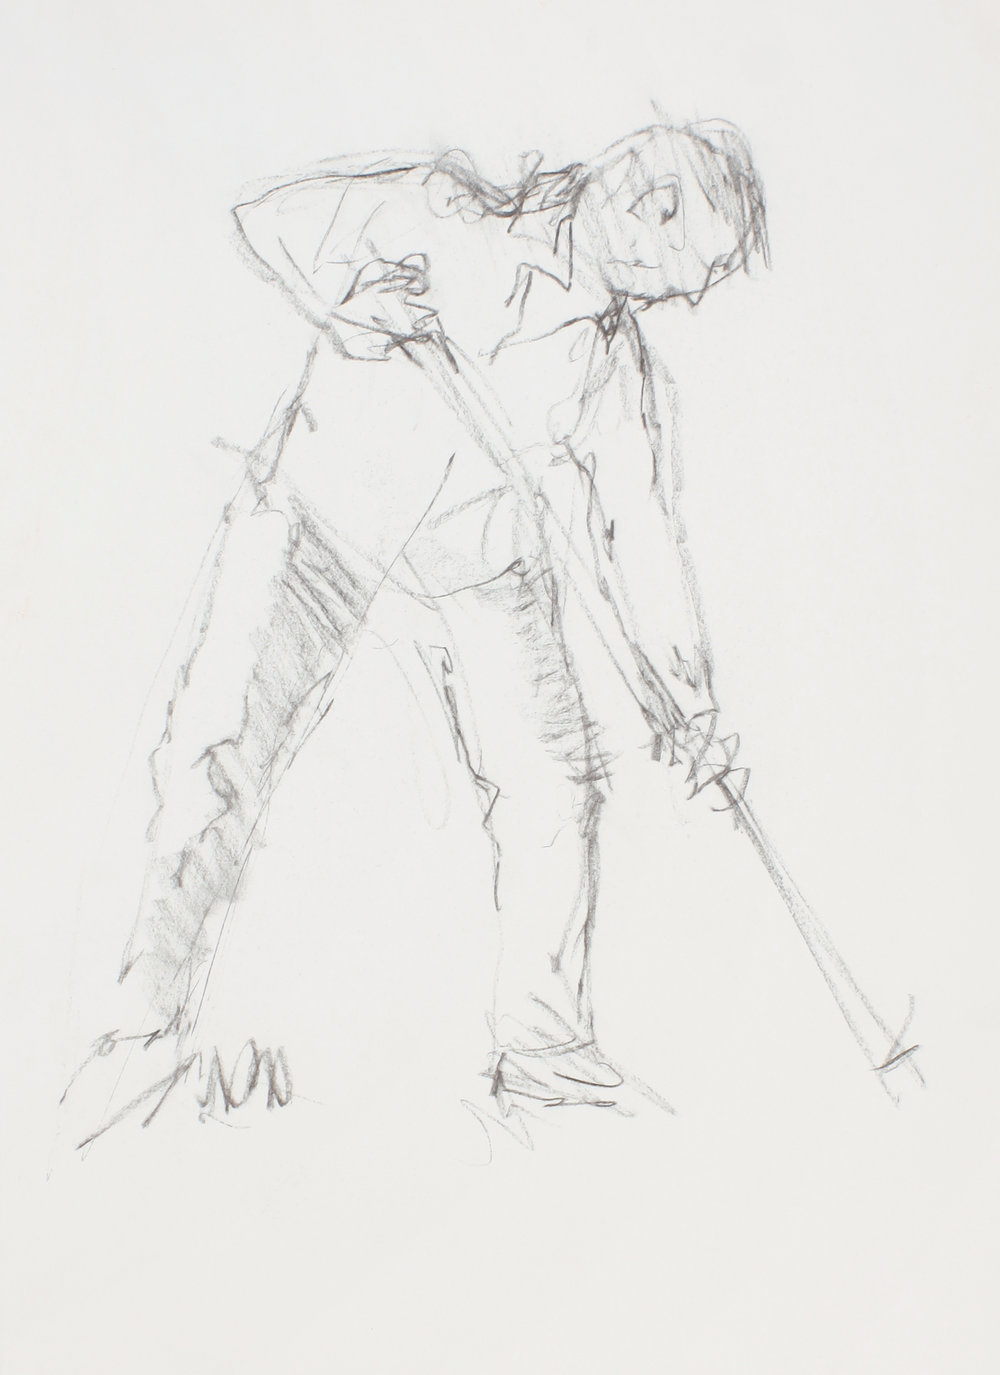 1980s_Digger__Man_with_Shovel_pencil_on_paper_15x11in_WPF598.jpg